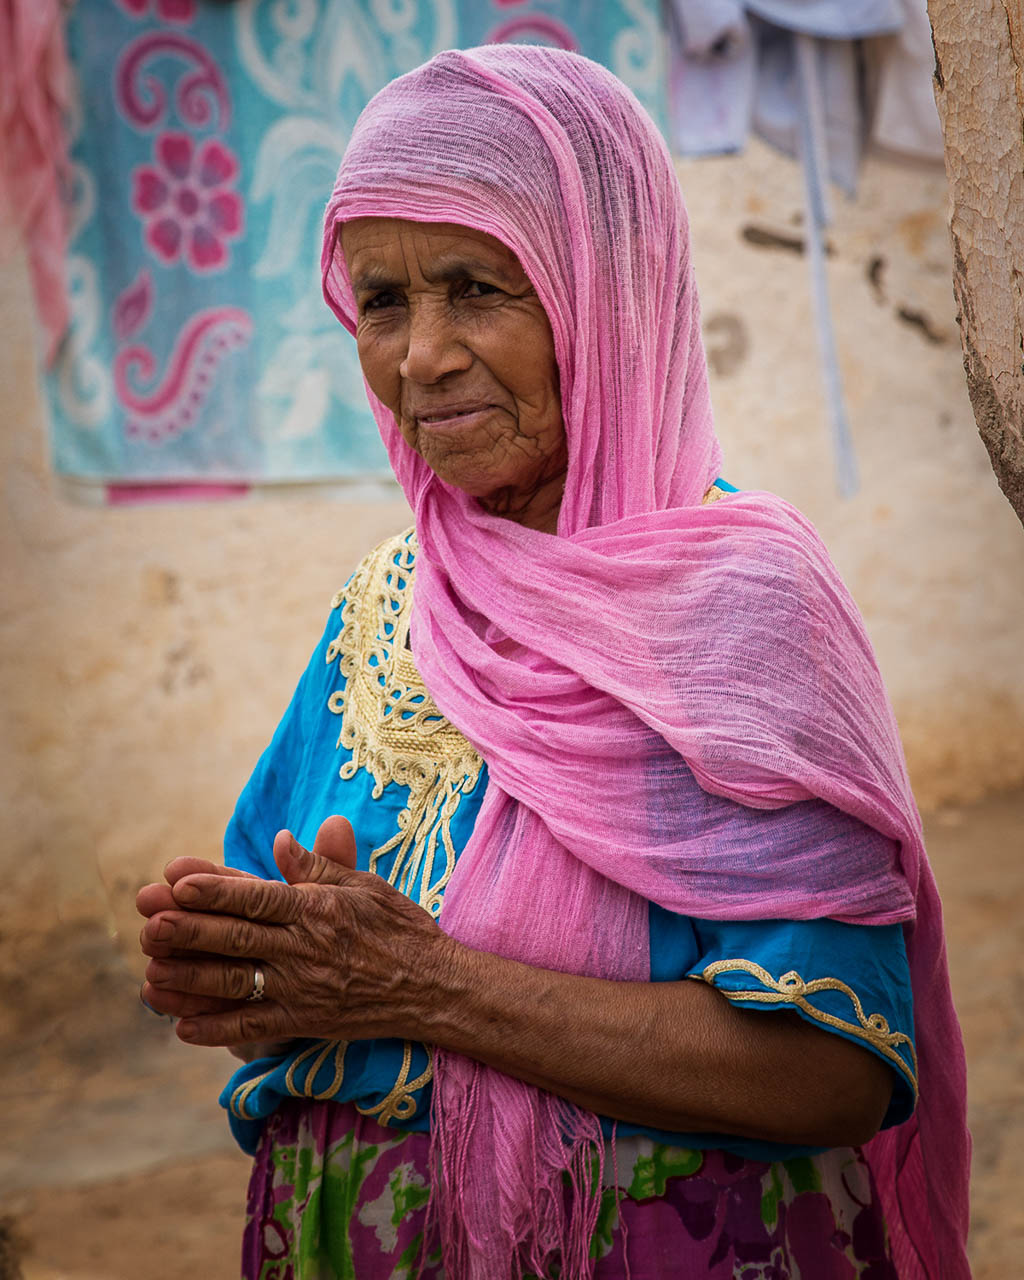 A Local Woman in the Countryside